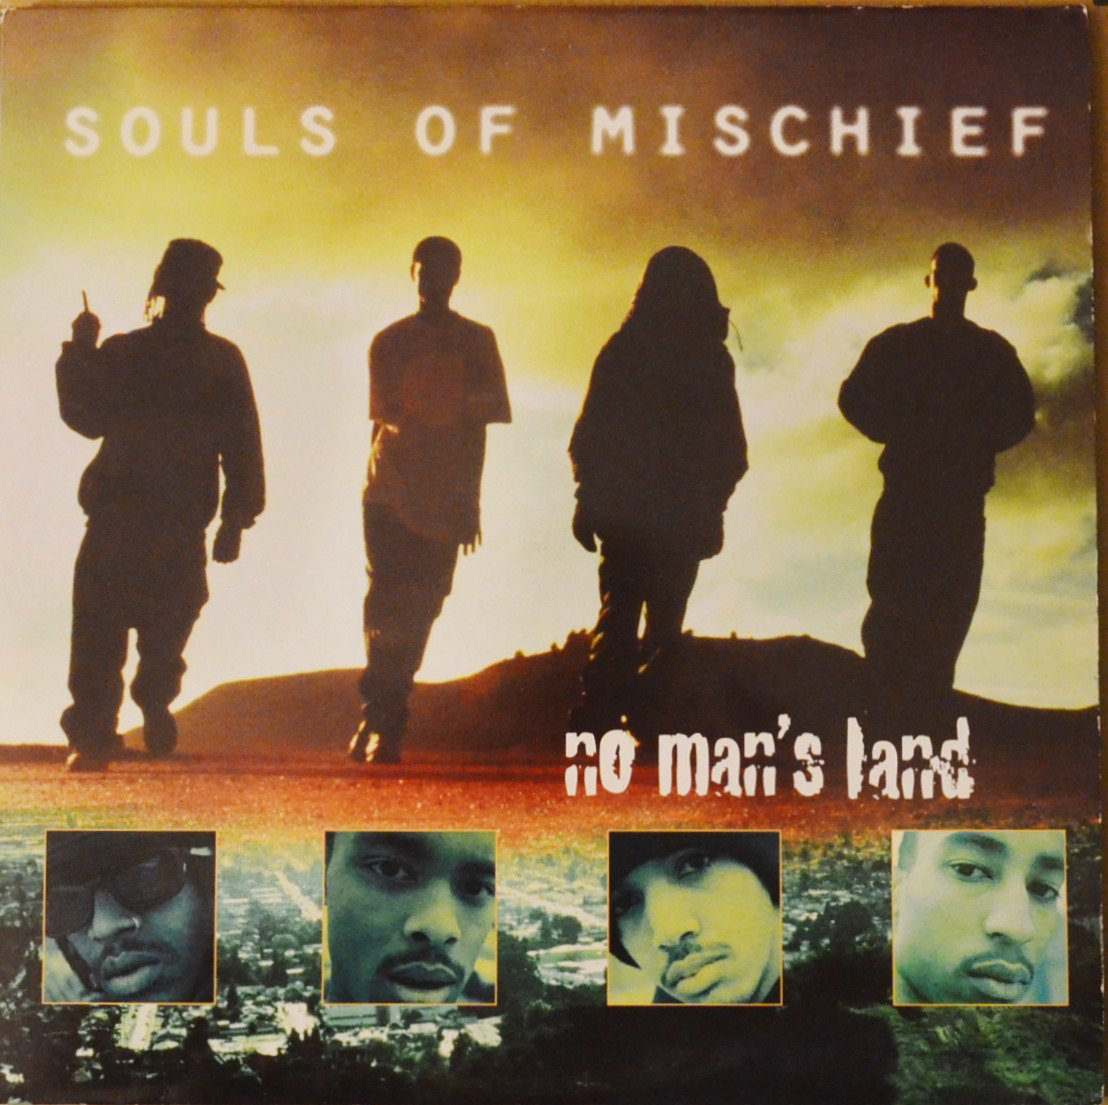 SOULS OF MISCHIEF ‎/ NO MAN'S LAND (2LP)